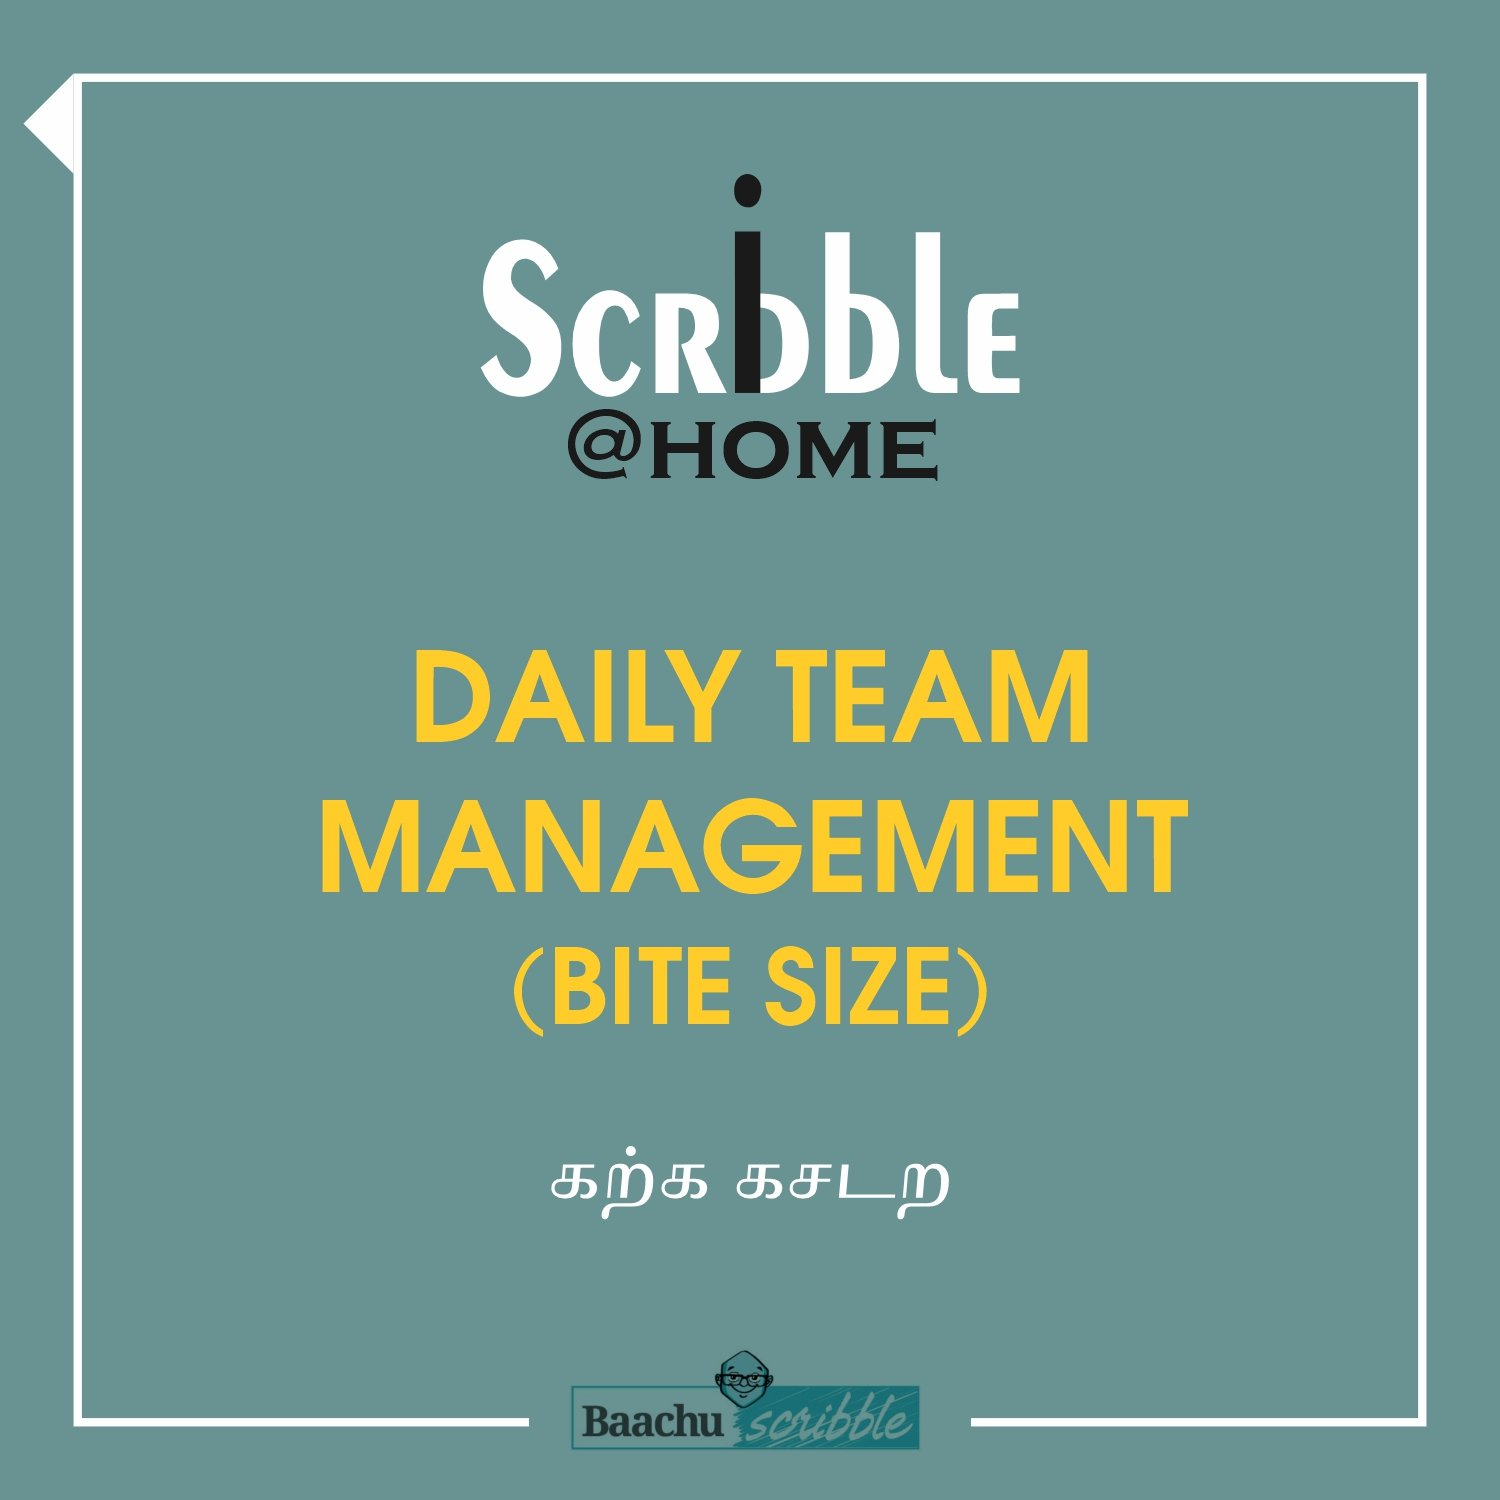 Daily Team Management (Bite Size)